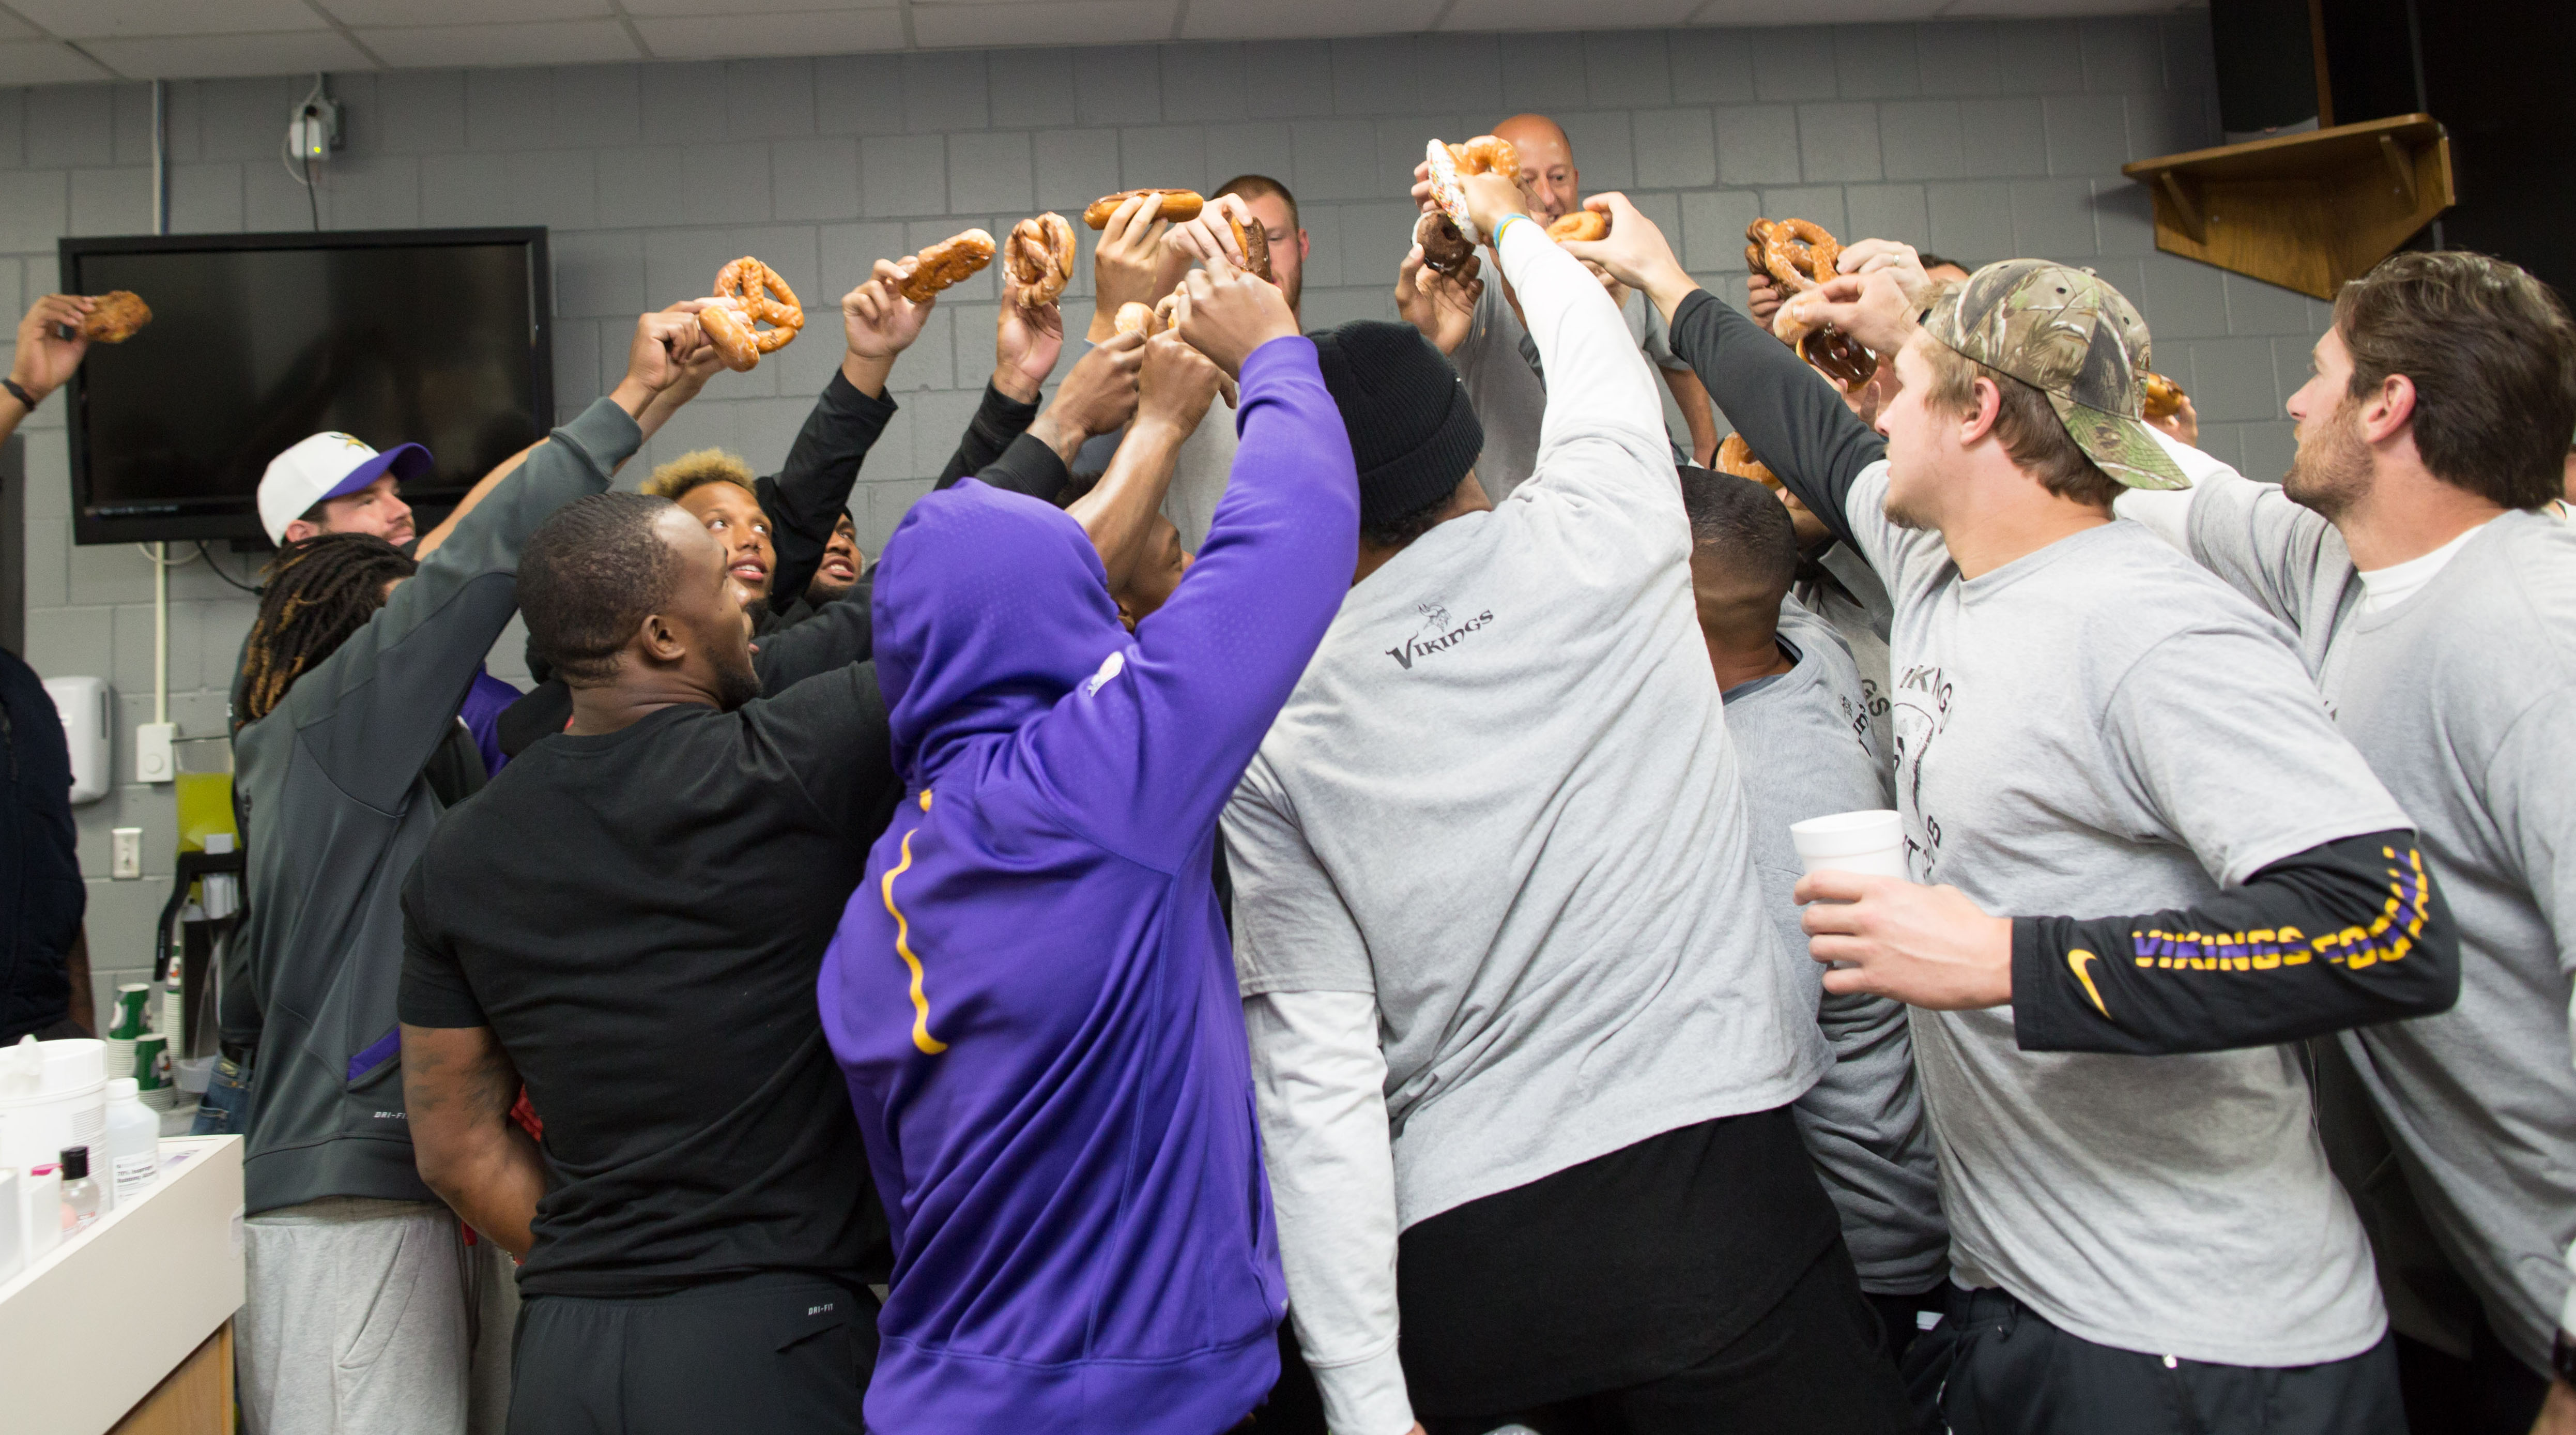 Vikings Donut Club members gather for the ceremonial toasting of the donuts.